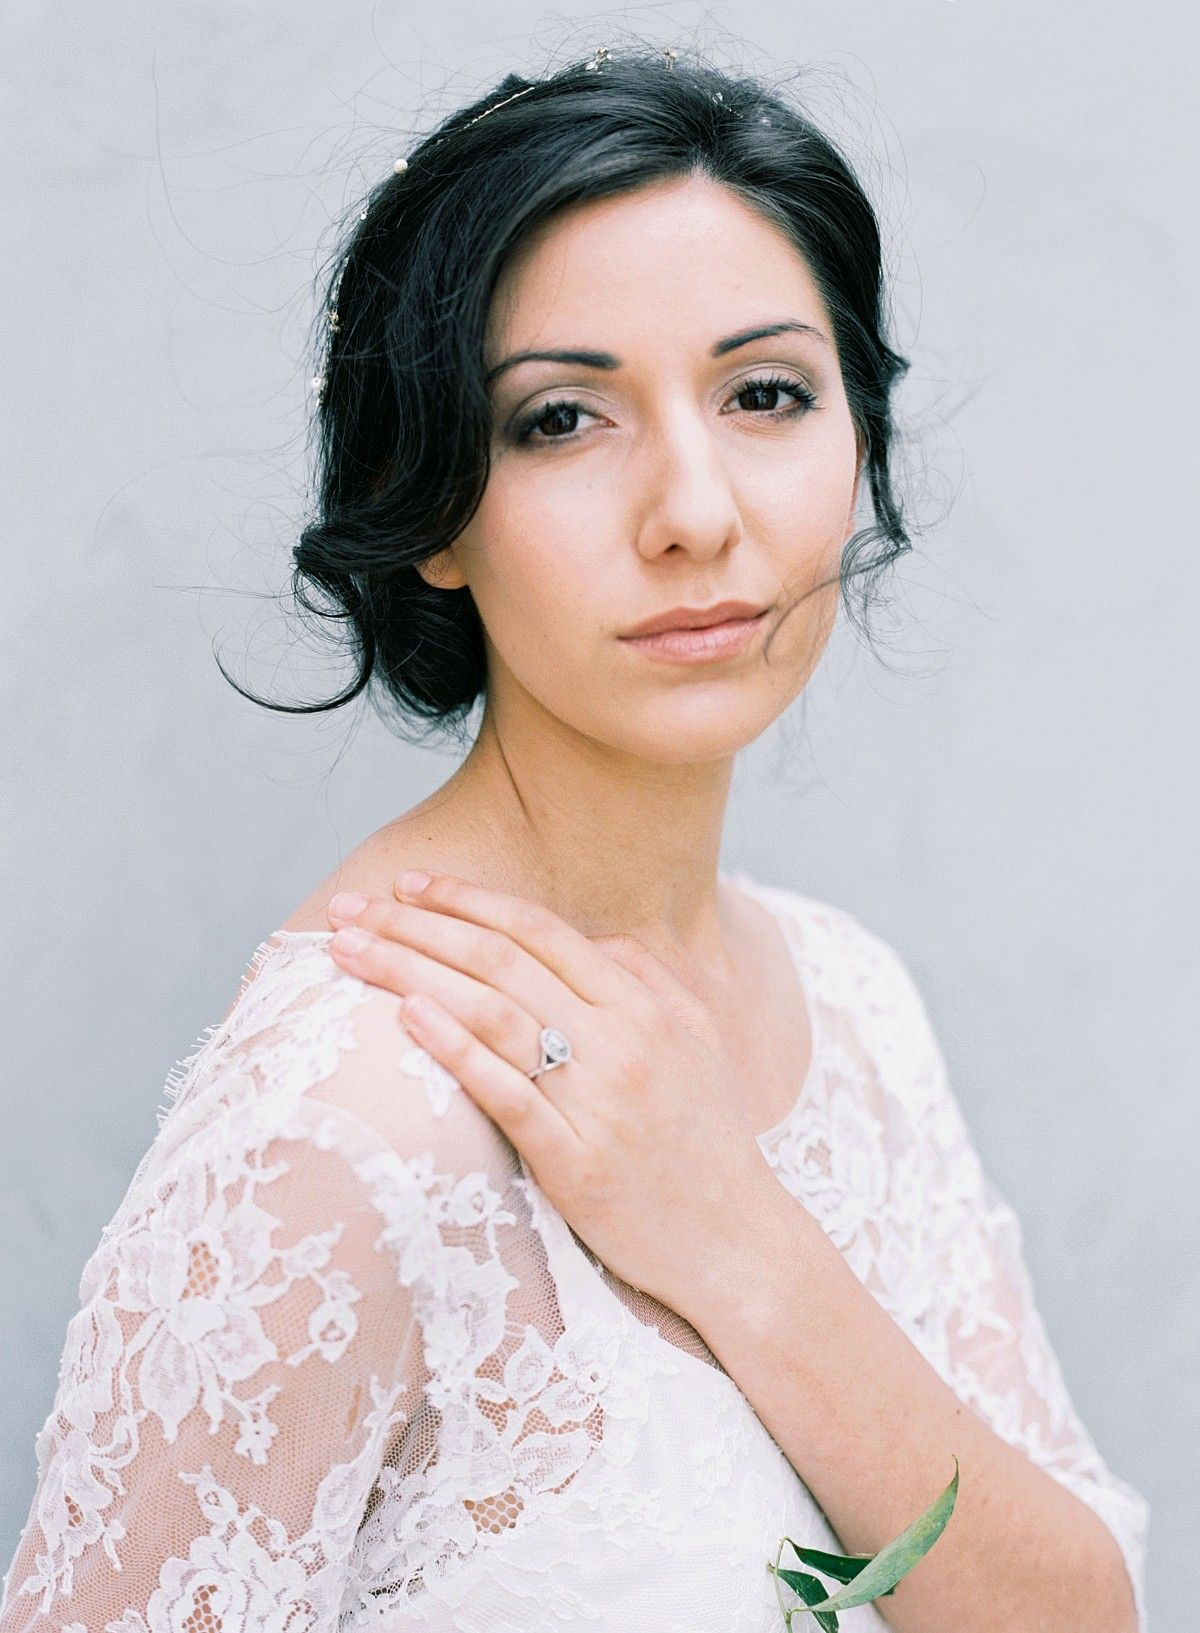 wedding hair and makeup inspiration from rouge workshop